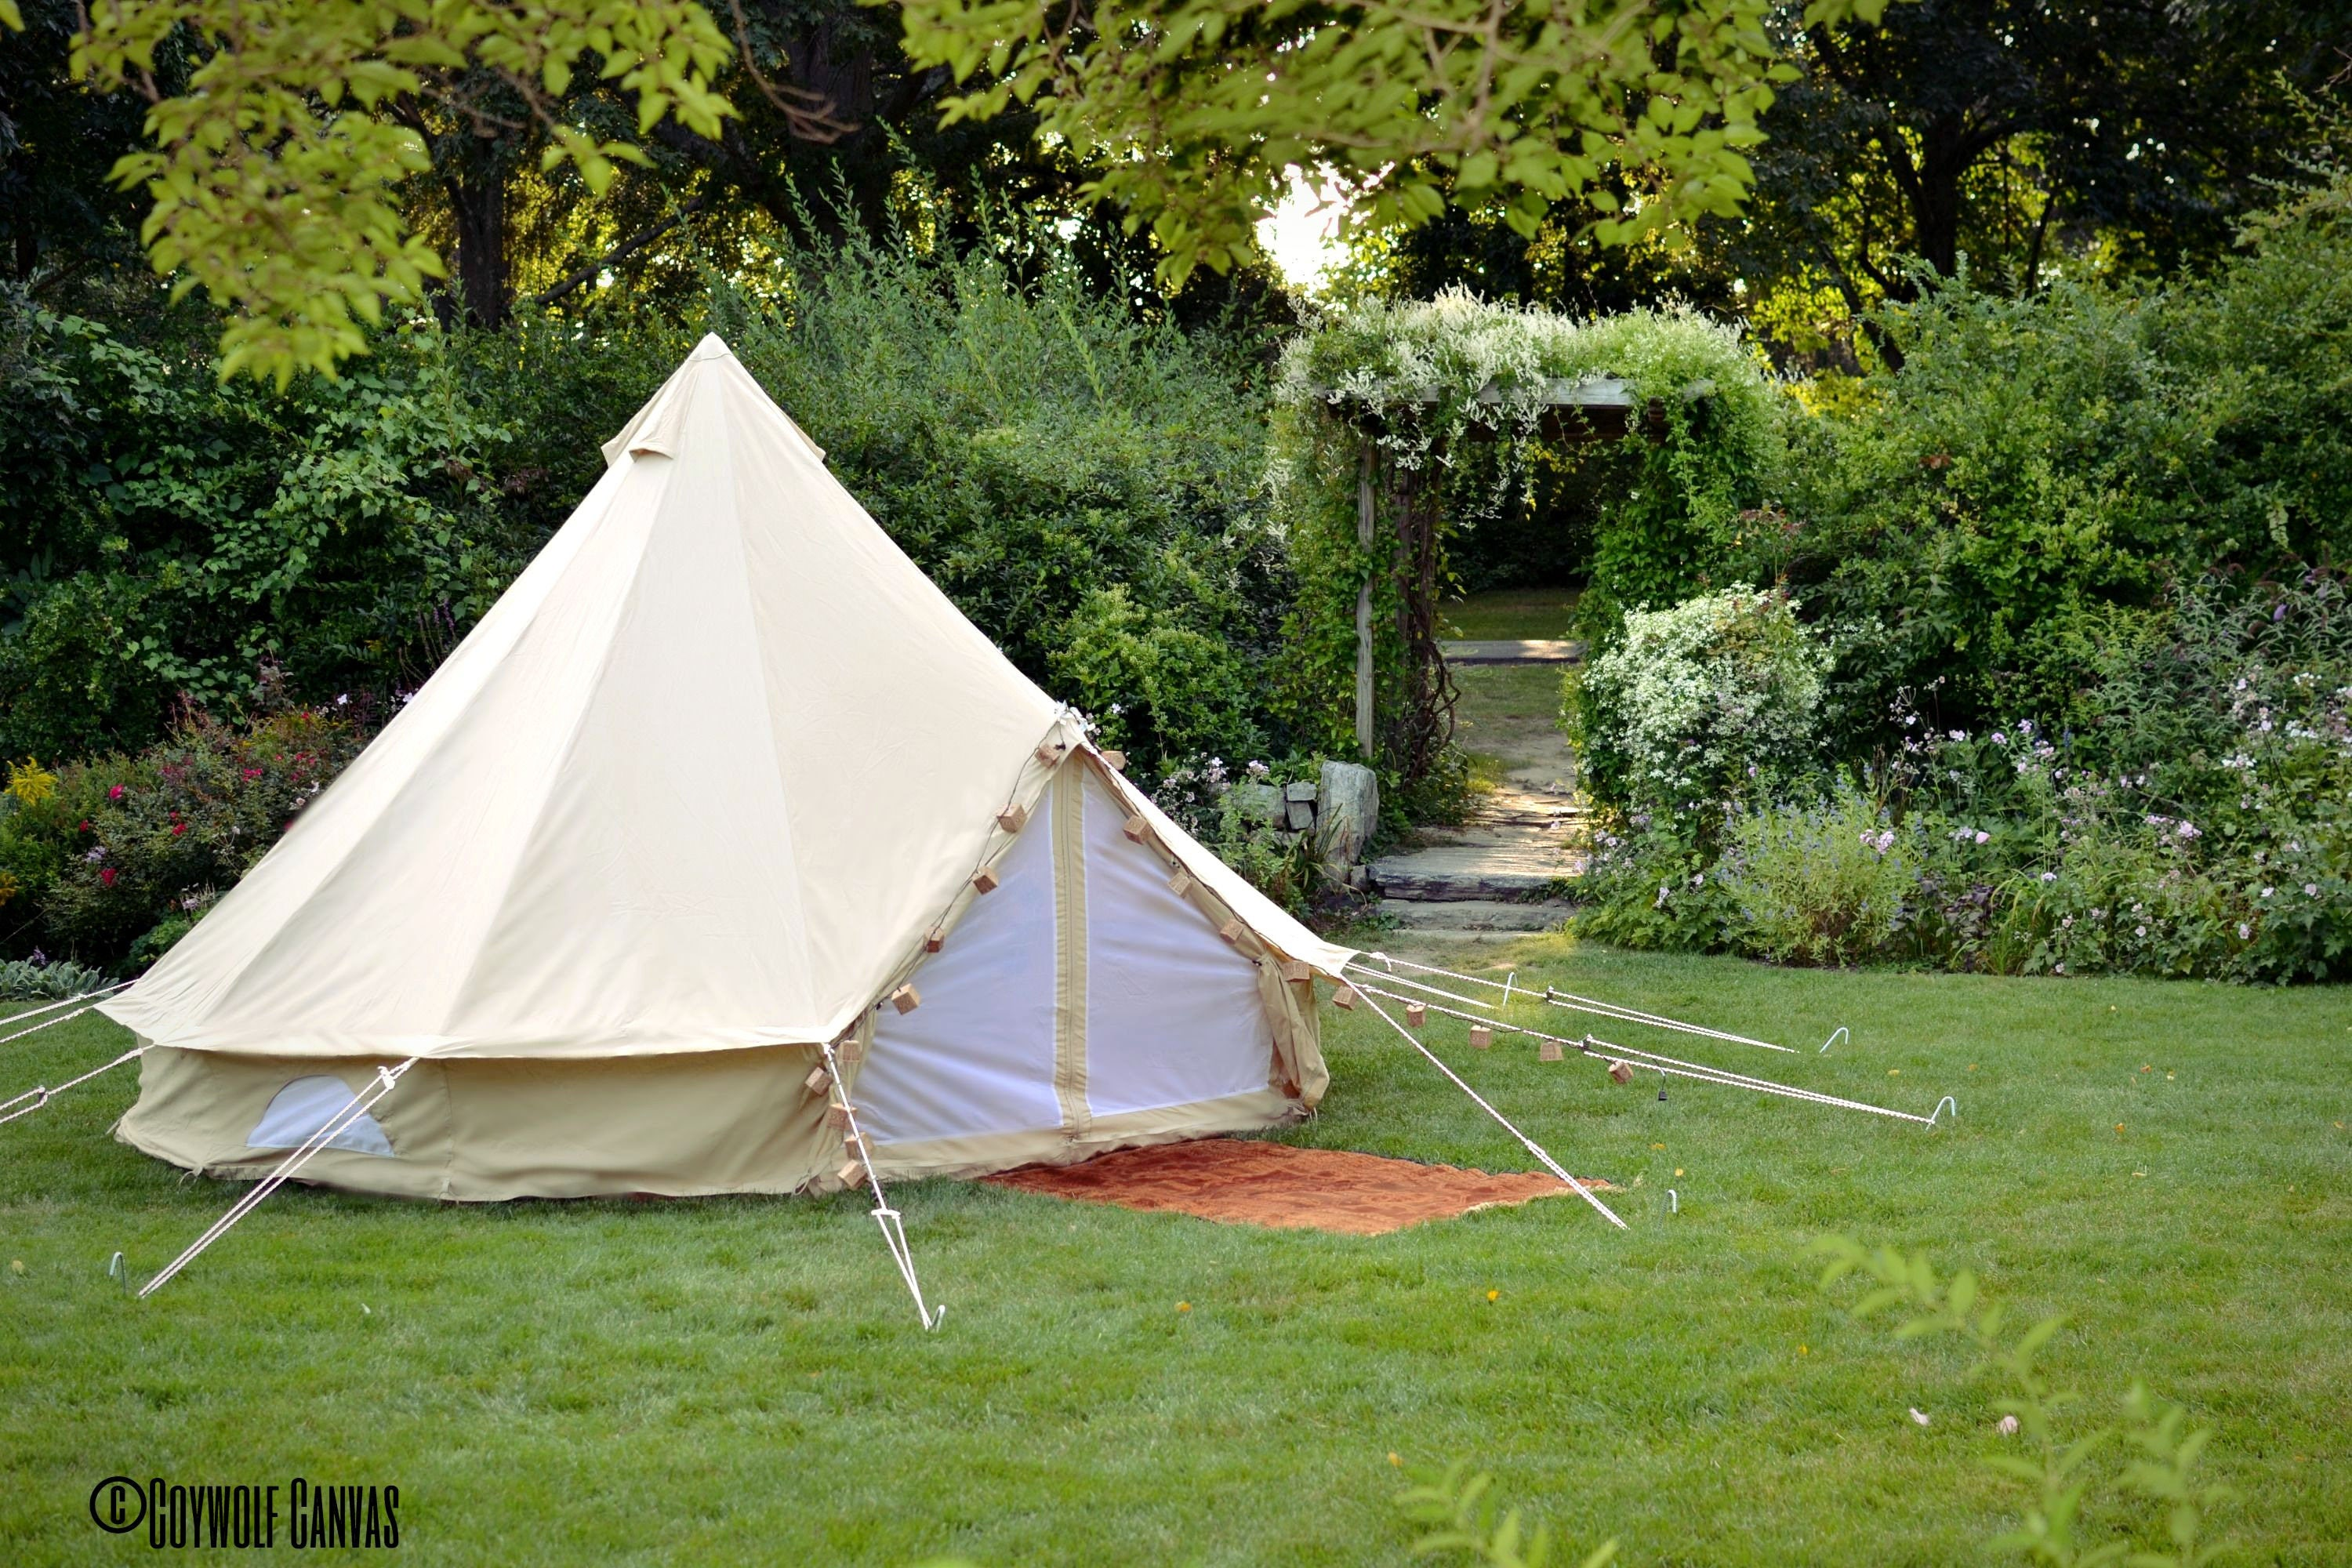 Canvas Bell Tent 16 ft round Festival Tent-Yurt-Bohemian Style-Garden boho style chicweddings & Canvas Bell Tent 16 ft round Festival Tent-Yurt-Bohemian Style ...